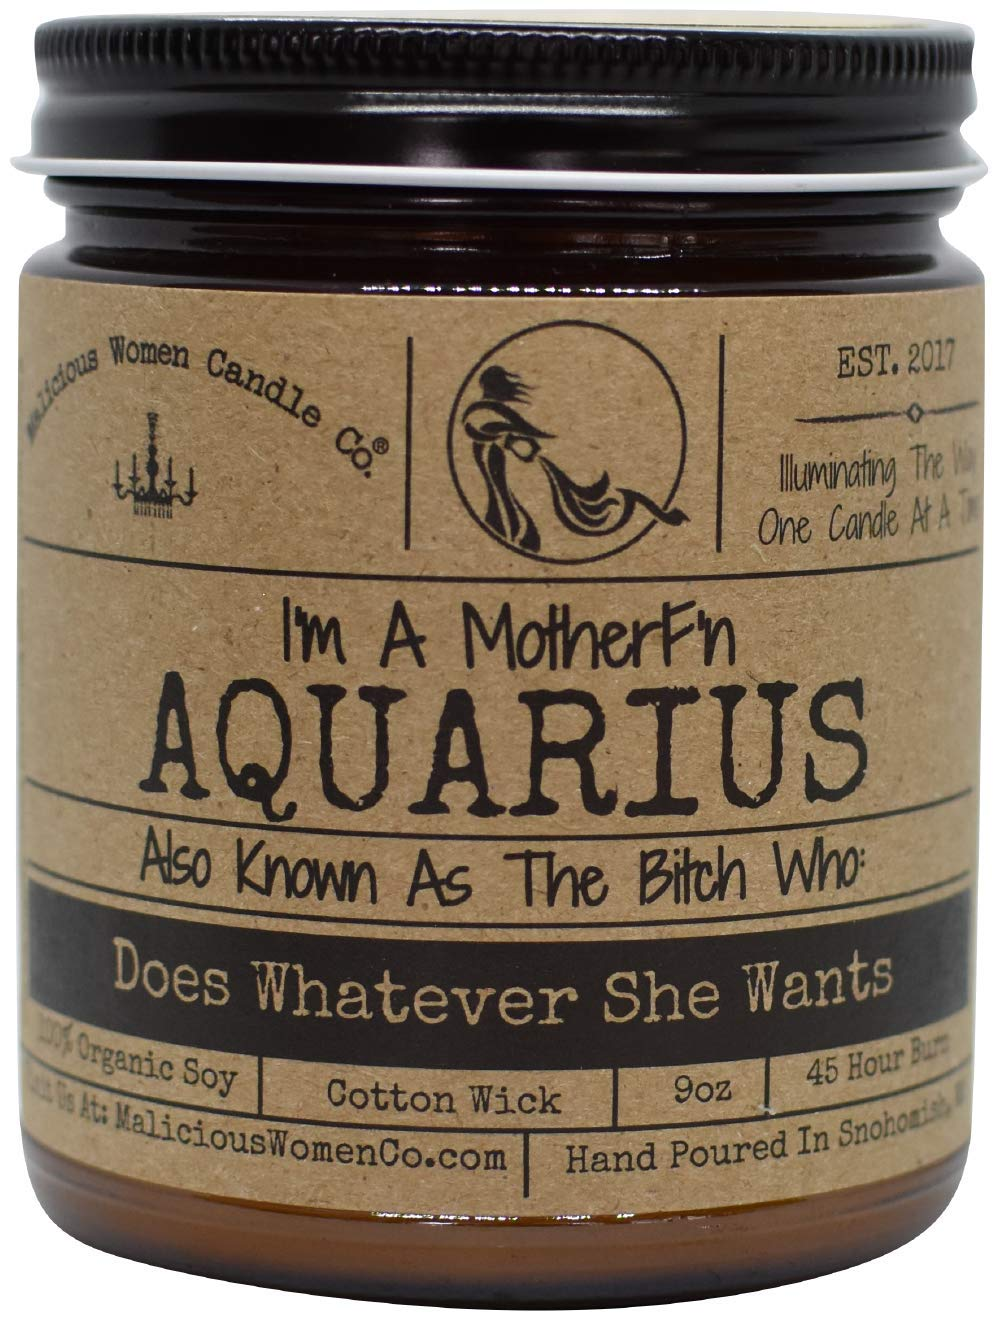 Malicious Women Candle Co - Aquarius The Zodiac Bitch - Does Whatever She Wants, Exotic Hemp (Cannabis Flower & Patchouli), All-Natural Organic Soy Candle, 9 oz